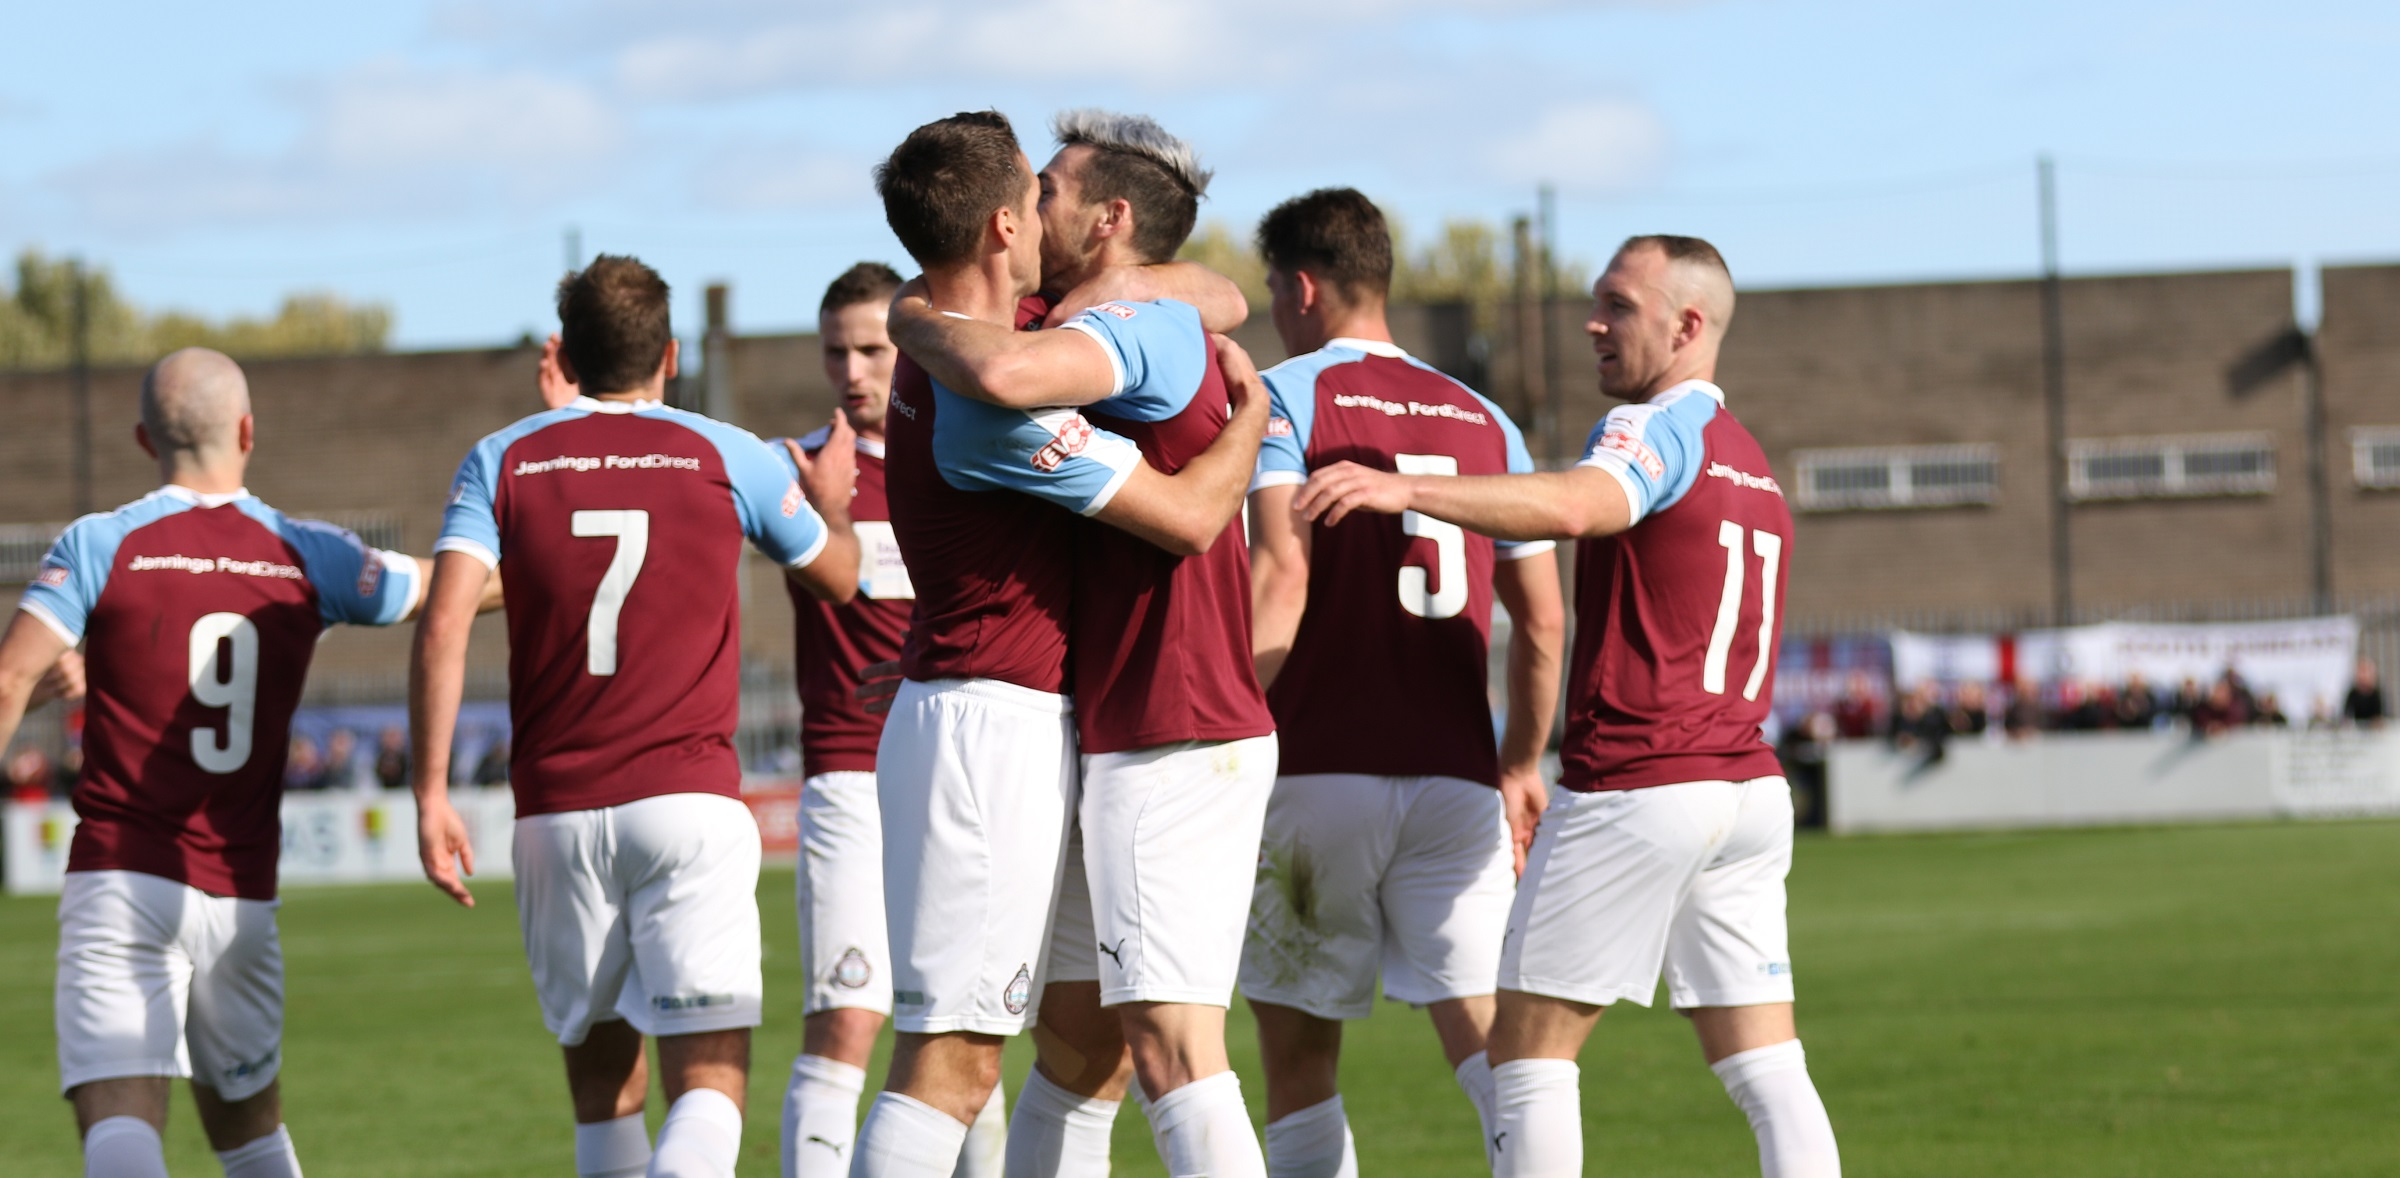 South Shields vs Stockport County